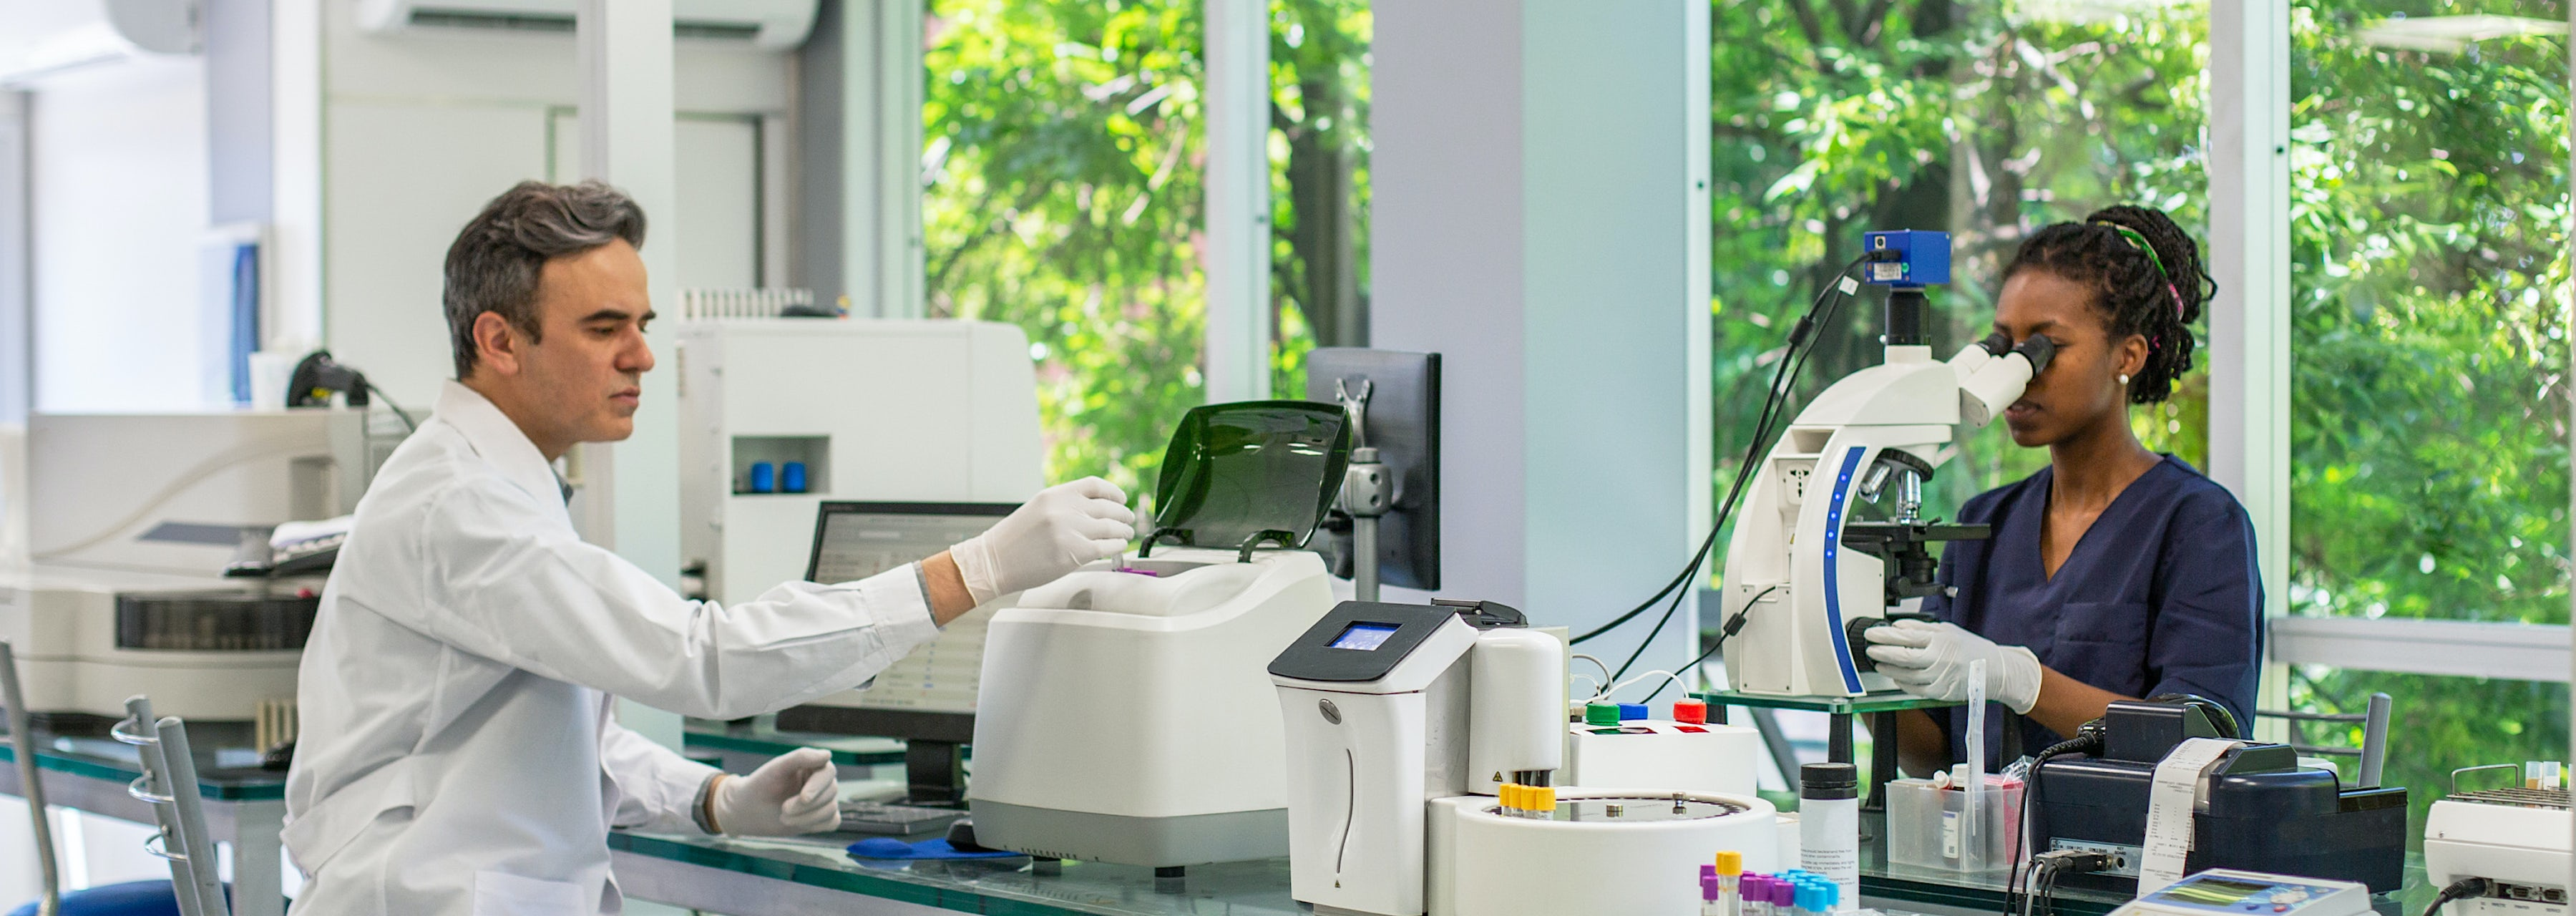 male and female lab technicians conducting clinical trial research cahaba research